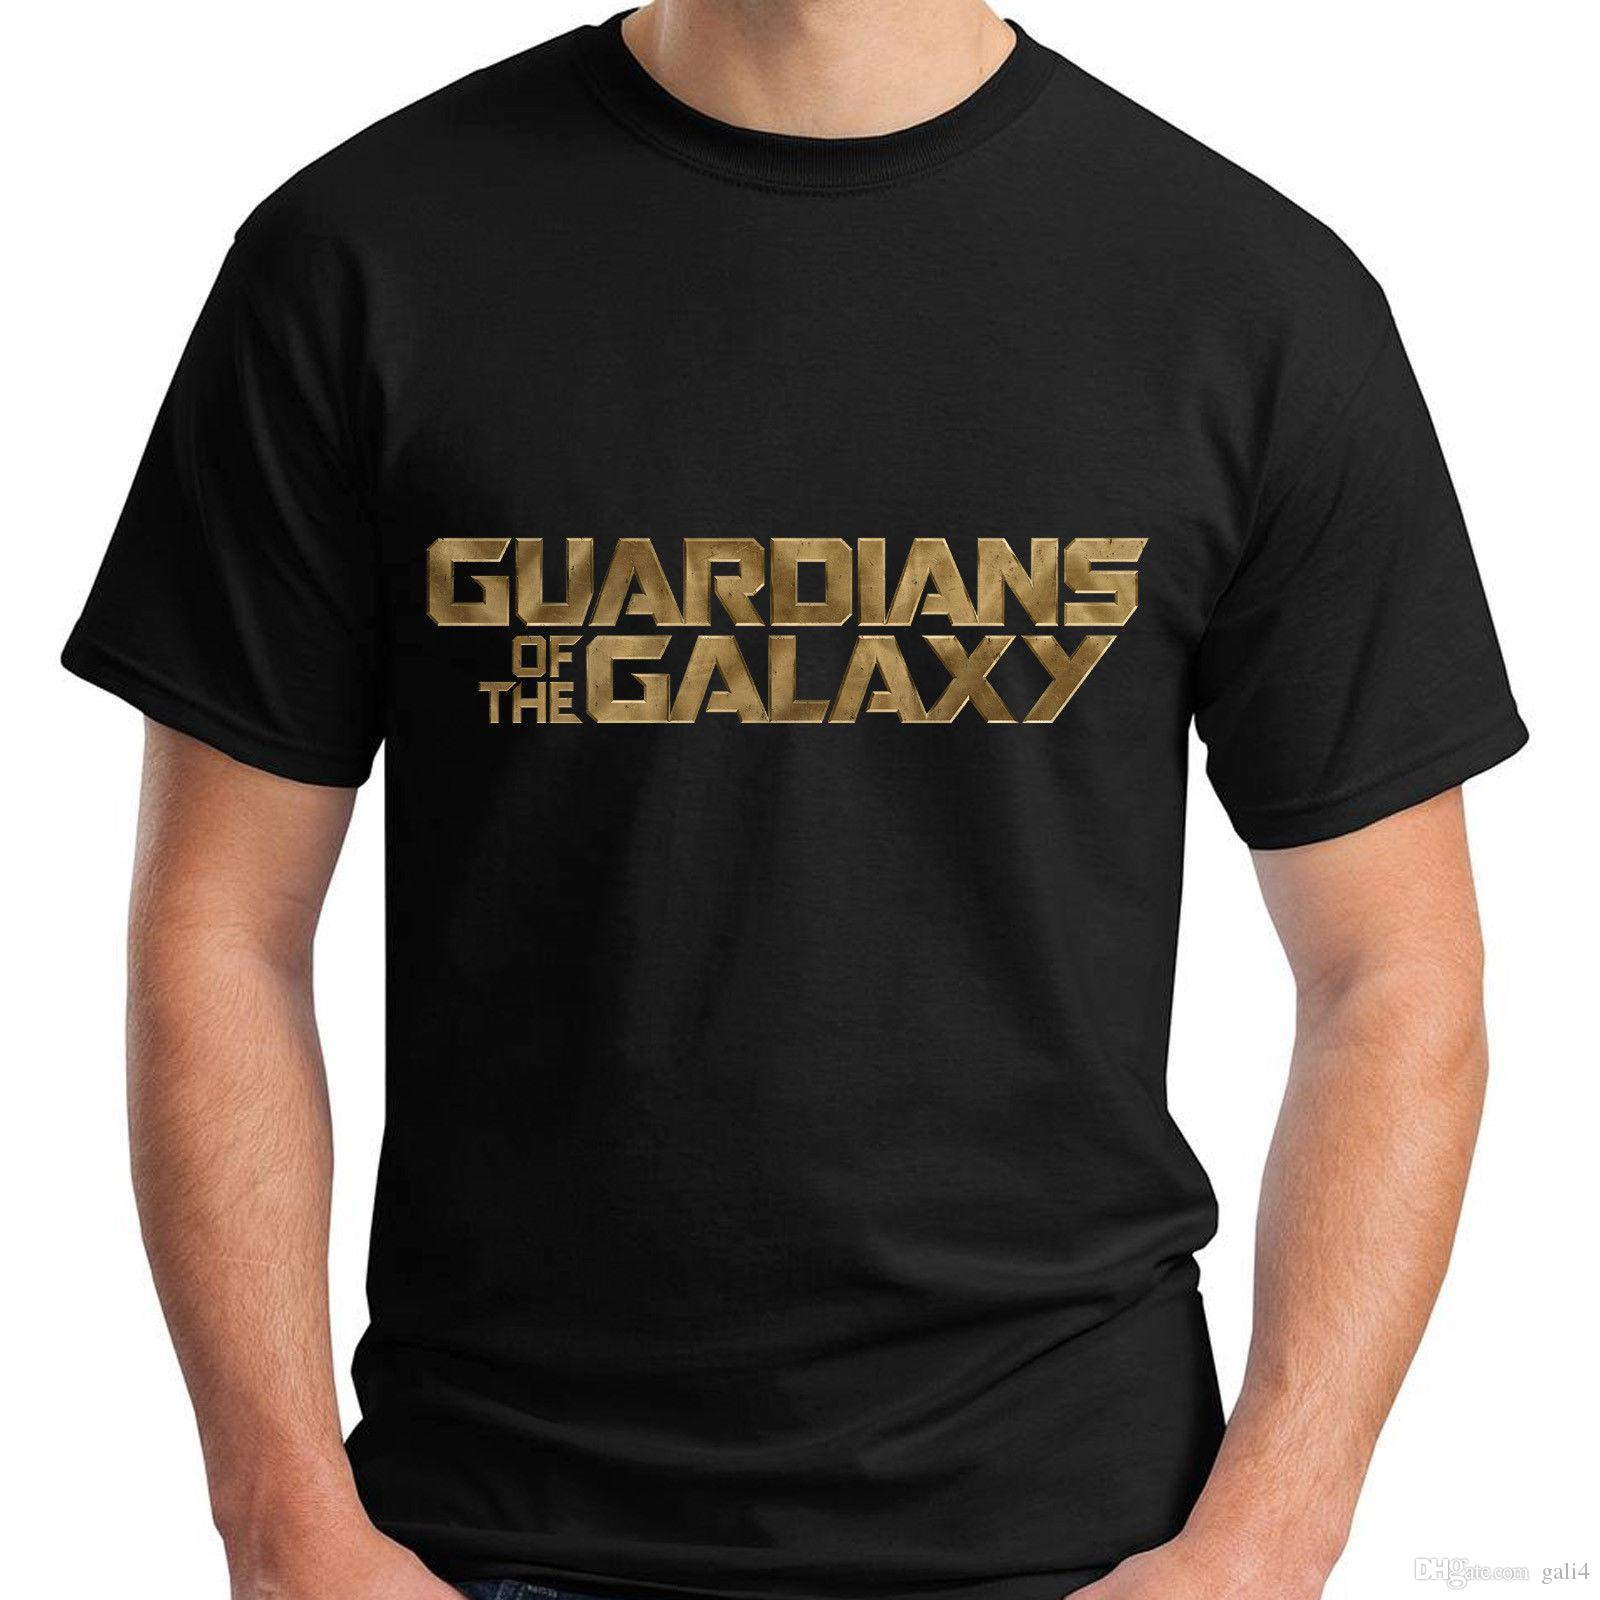 T-shirt manica corta uomo New Guardian of the Galaxy Black T-Shirt taglia S-5XL